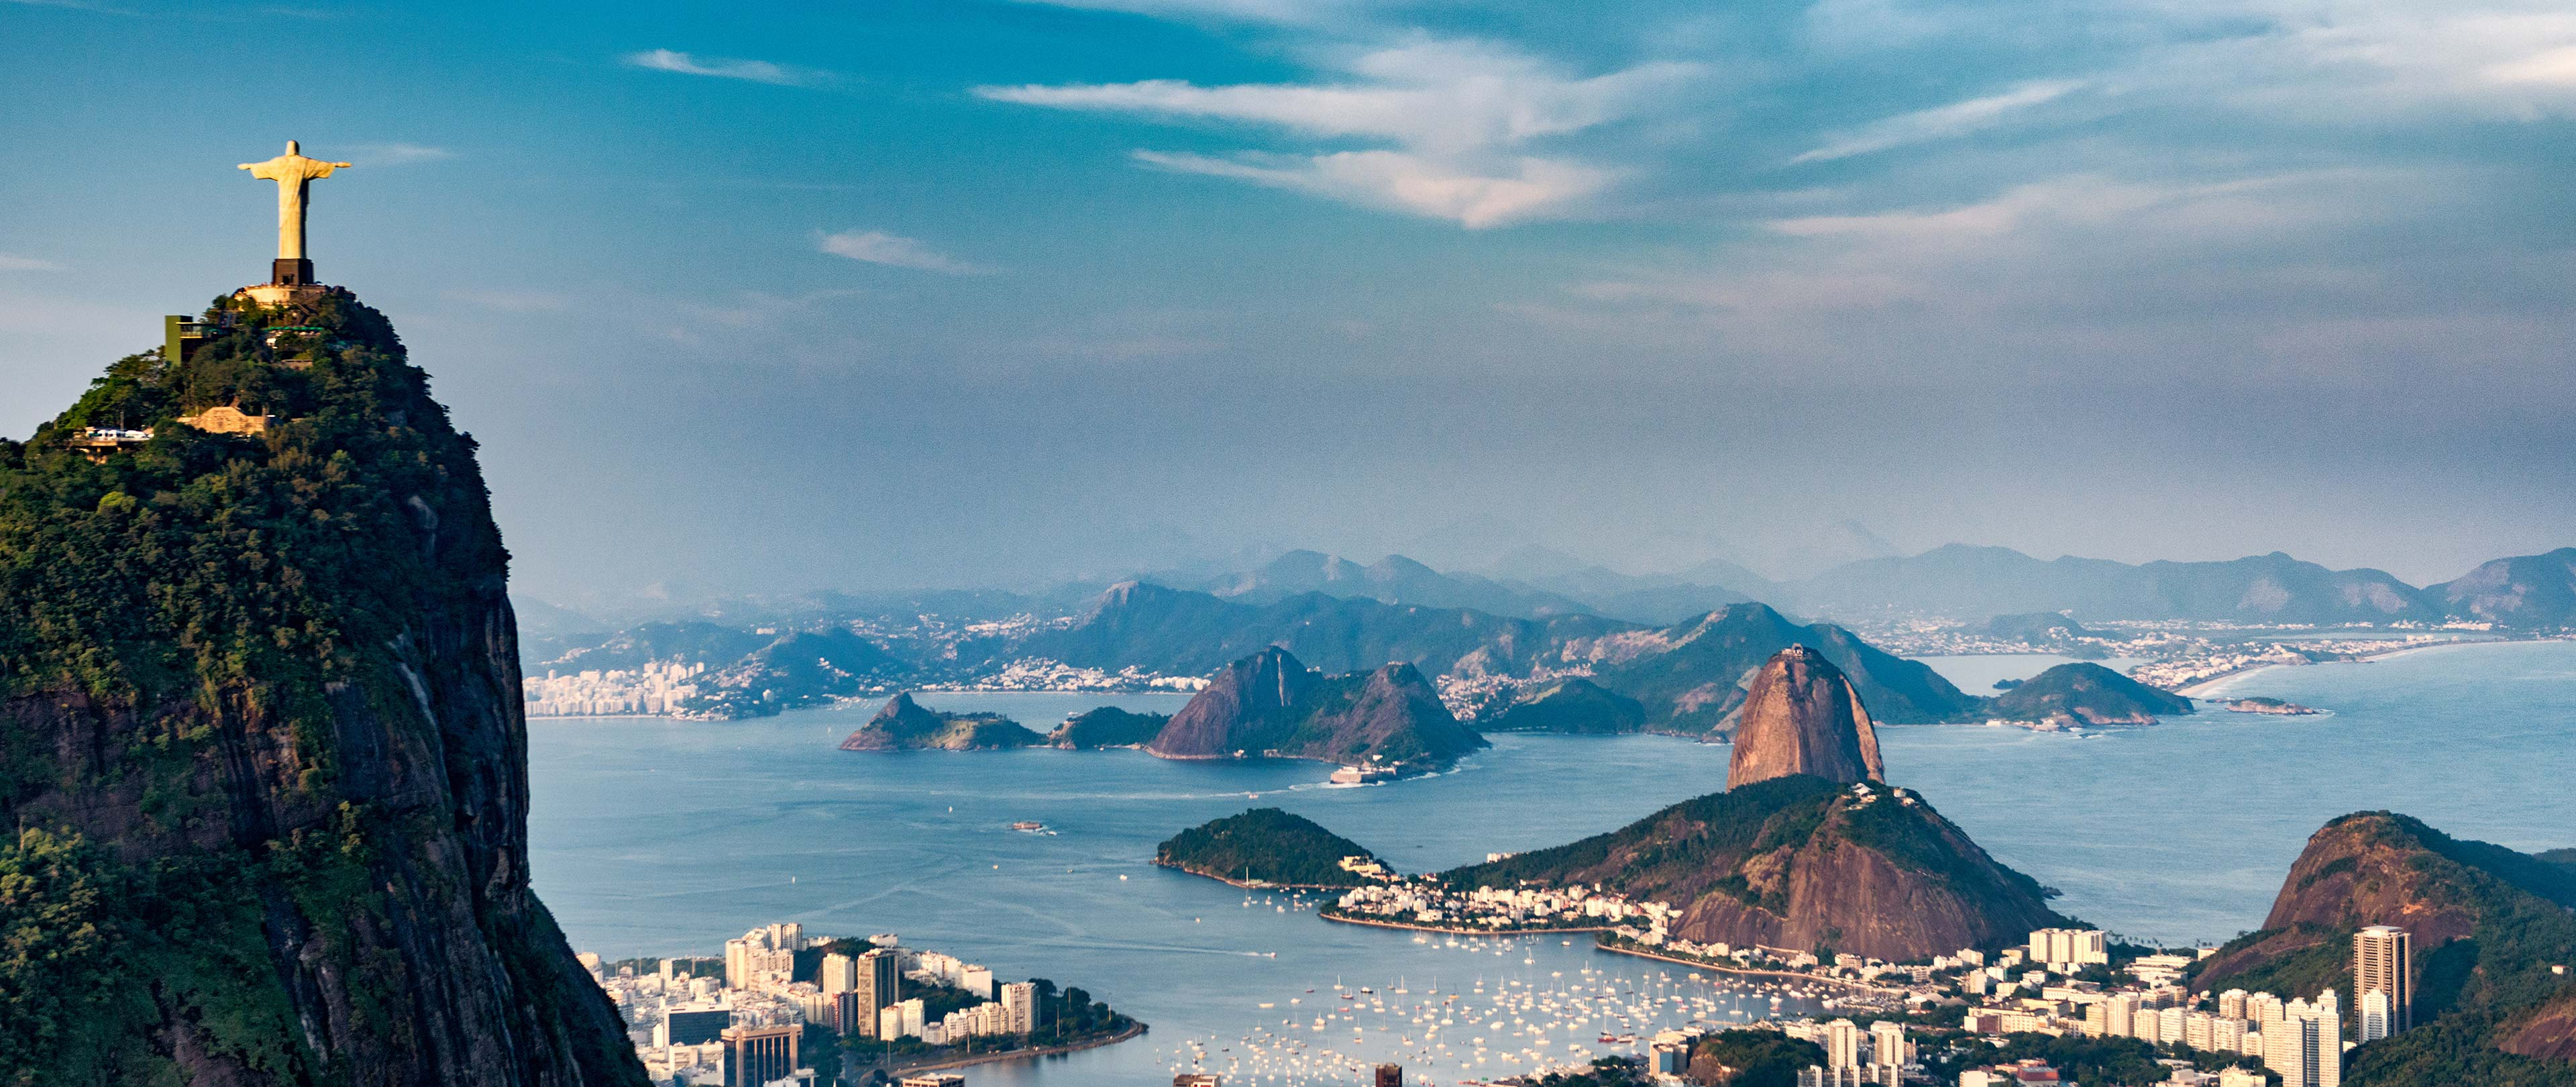 Things to Do in Rio de Janeiro That Don't Cost a Thing